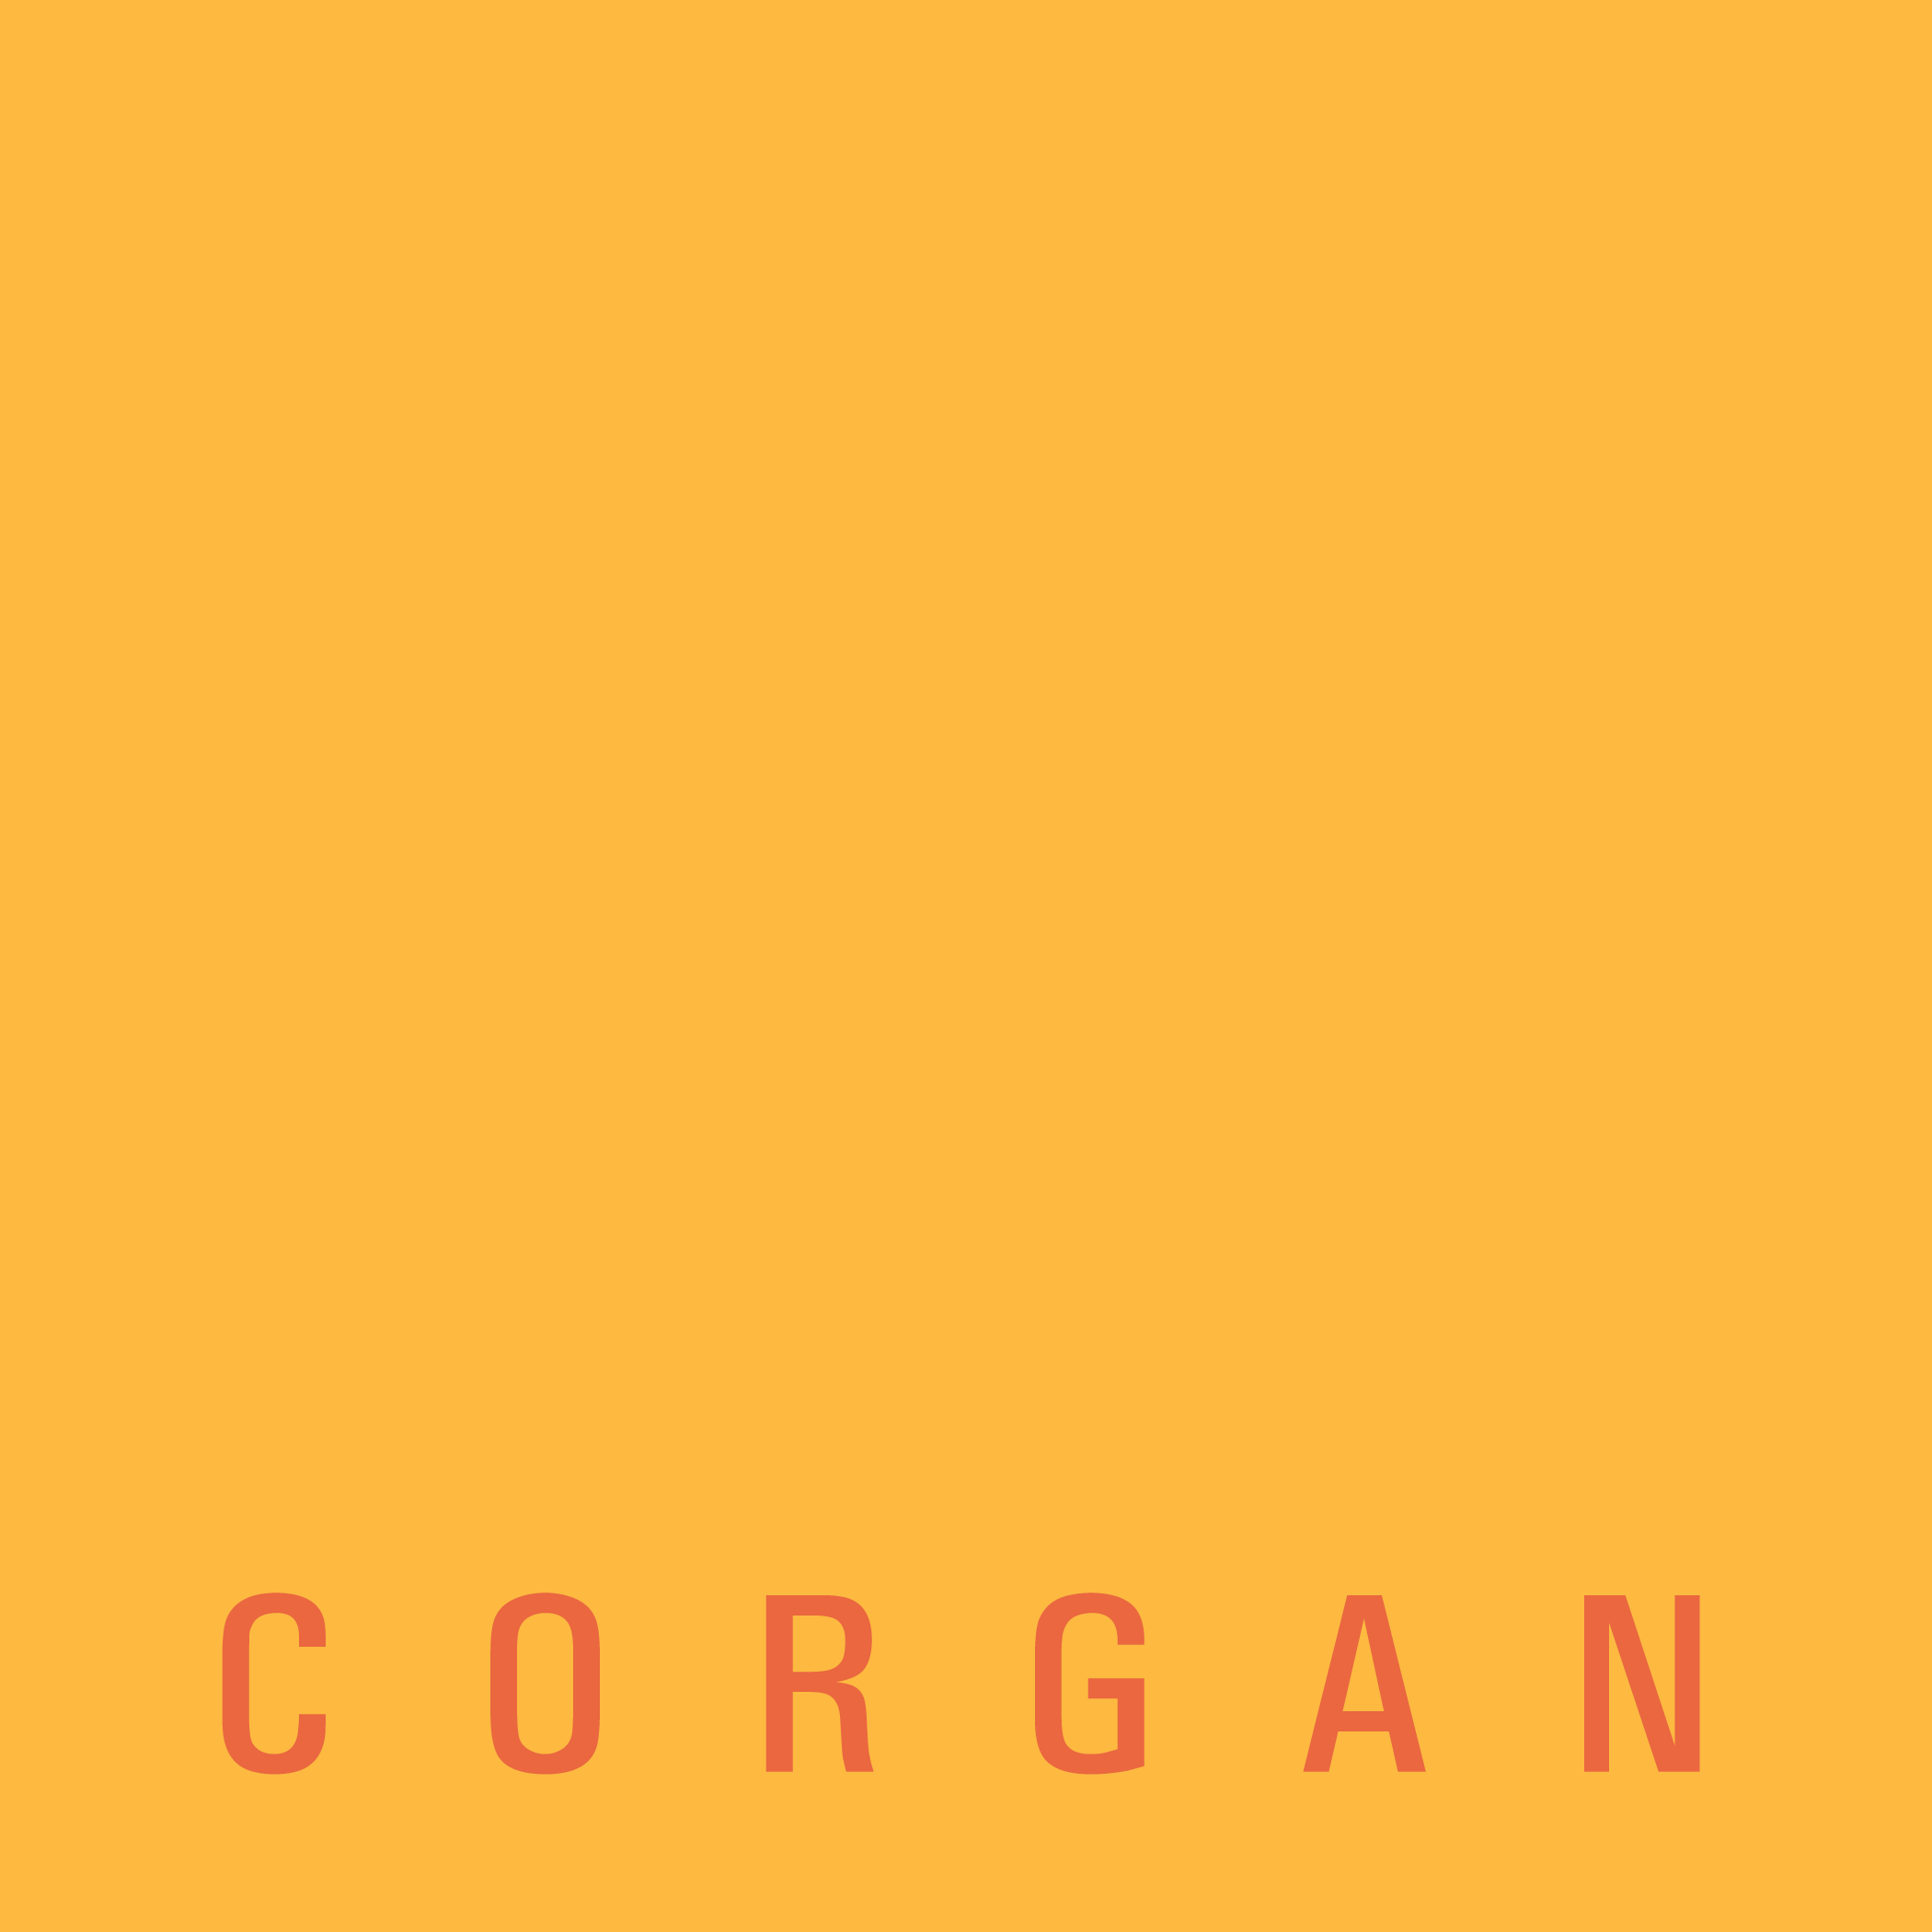 corgan design firm Corgan Design Firm: 5 projects you can't miss! zzzcorgan